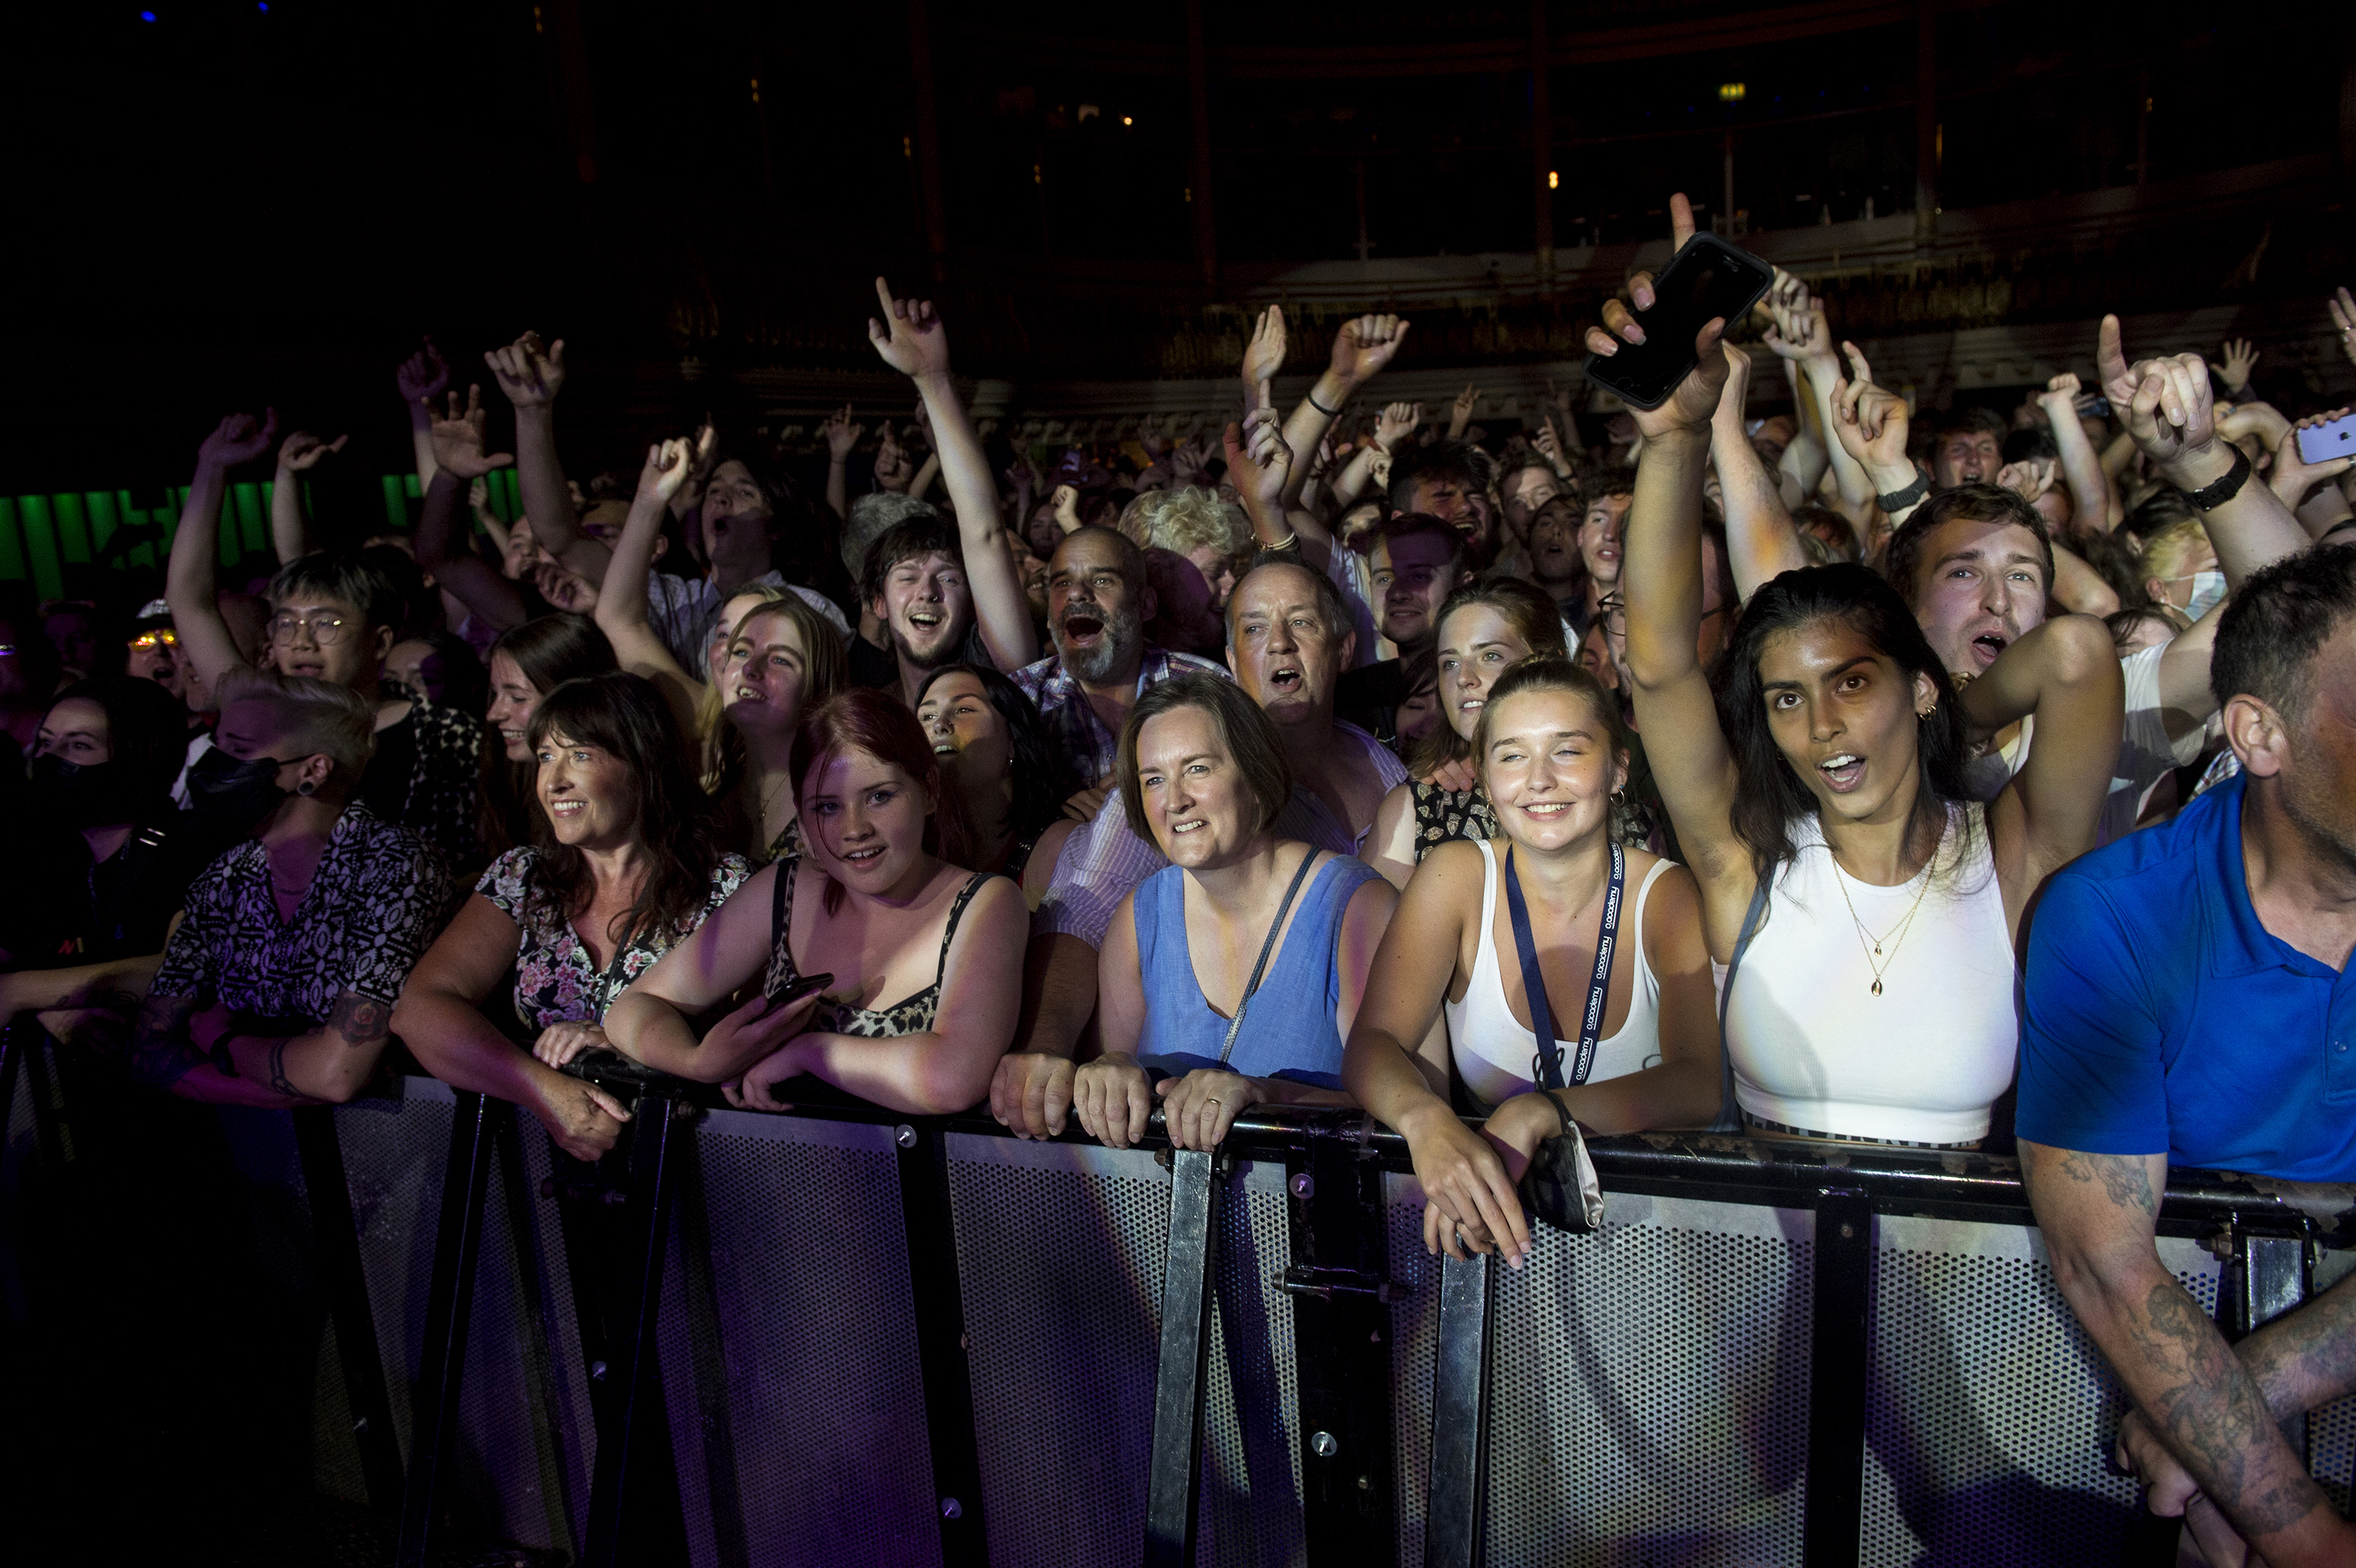 <p>BOURNEMOUTH, ENGLAND - JULY 22: Fans of Wolf Alice attend their concert at O2 Academy Bournemouth on July 22, 2021 in Bournemouth, England. (Photo by Mark Holloway/Redferns)</p>